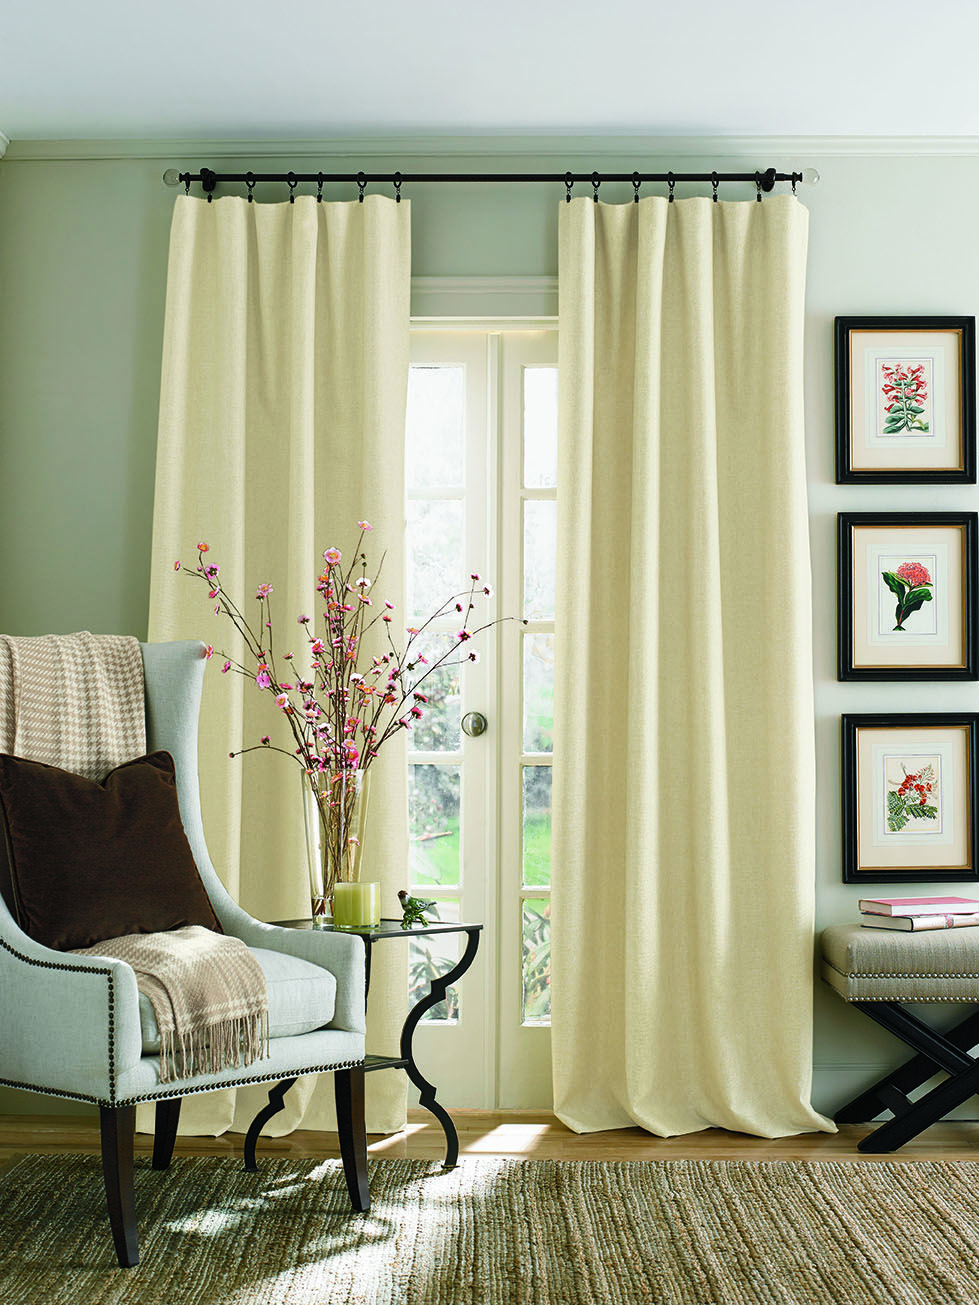 Clip Ring Curtains The Case Is Open And Shut Curtains Drapes And Blinds Pinch Pleat Curtains